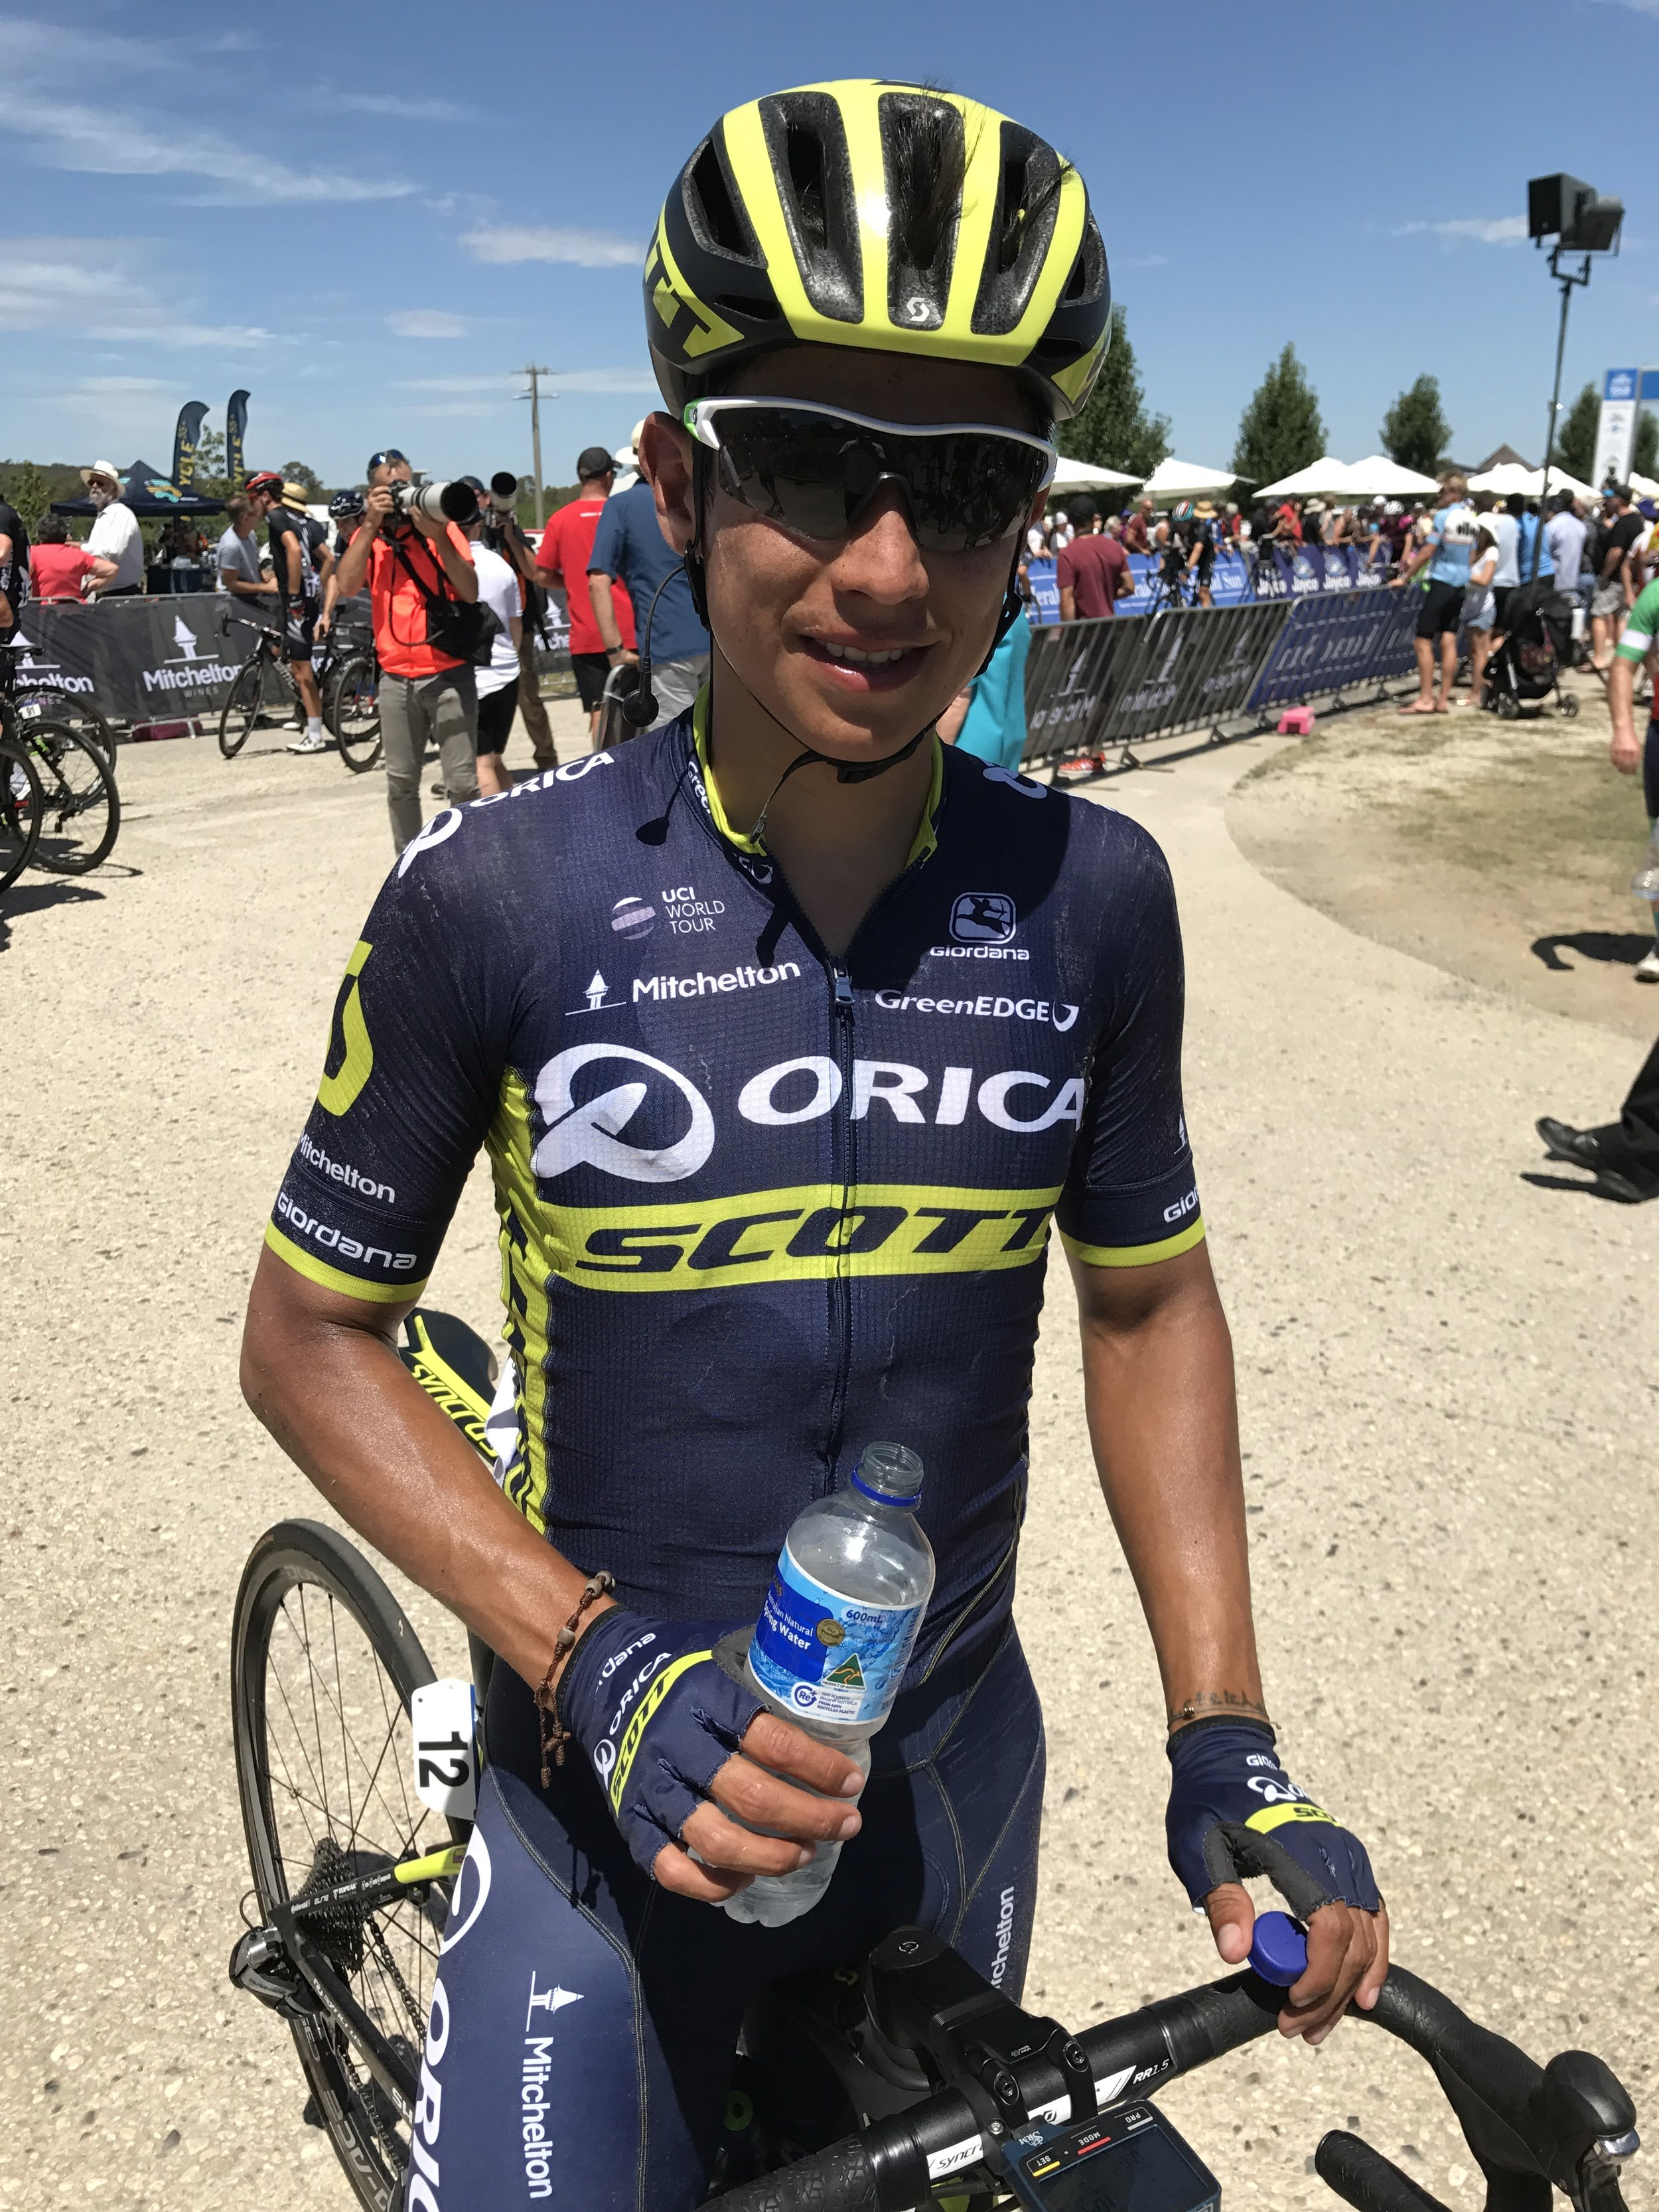 HST 2017 Stage 3 - Esteban Chaves at Mitchelton Winery finish